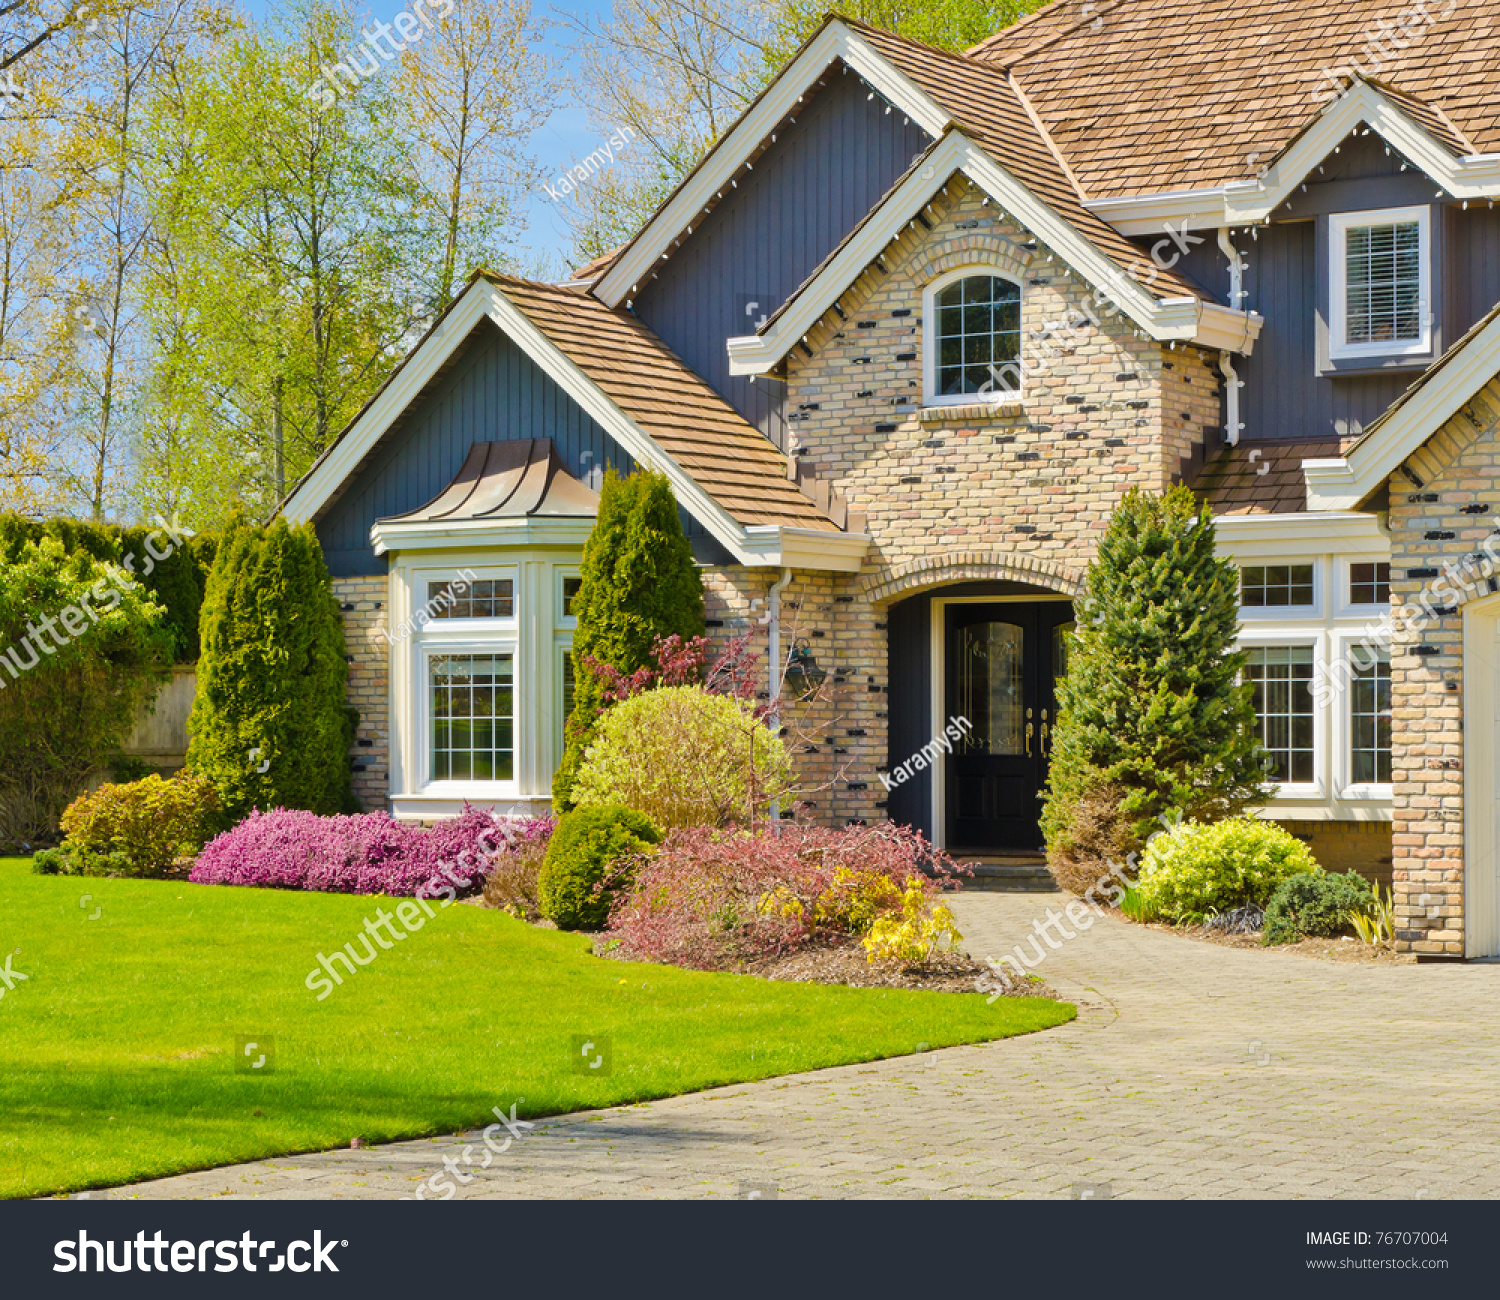 Fragment nice house vancouver canada stock photo 76707004 for Nice home pictures